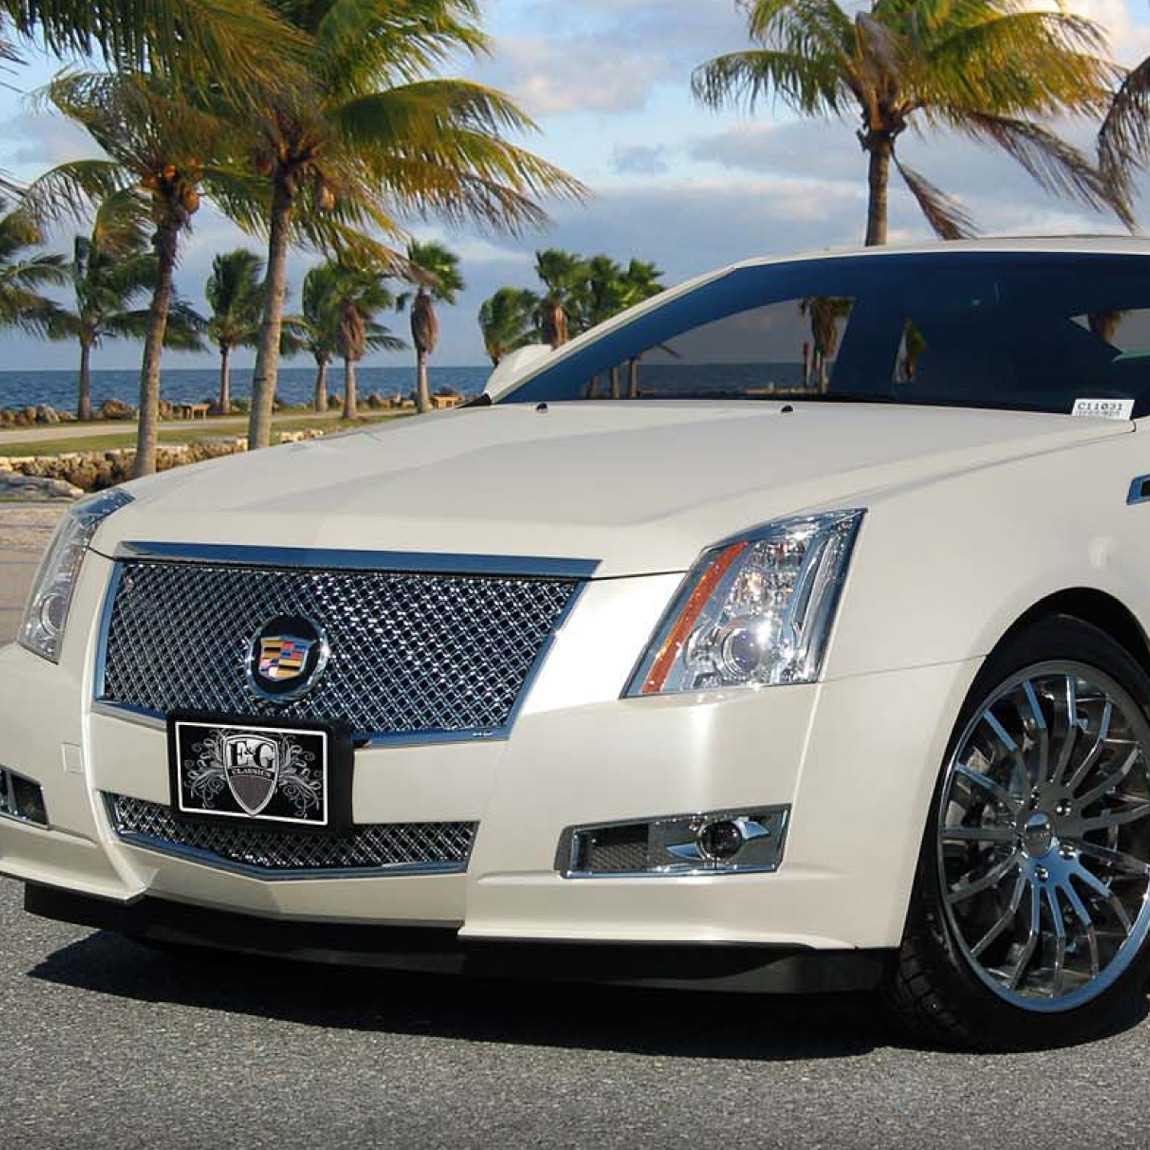 Who Makes Cadillac >> E&G Classics 2008-2013 Cadillac CTS Grille Classic Heavy ...